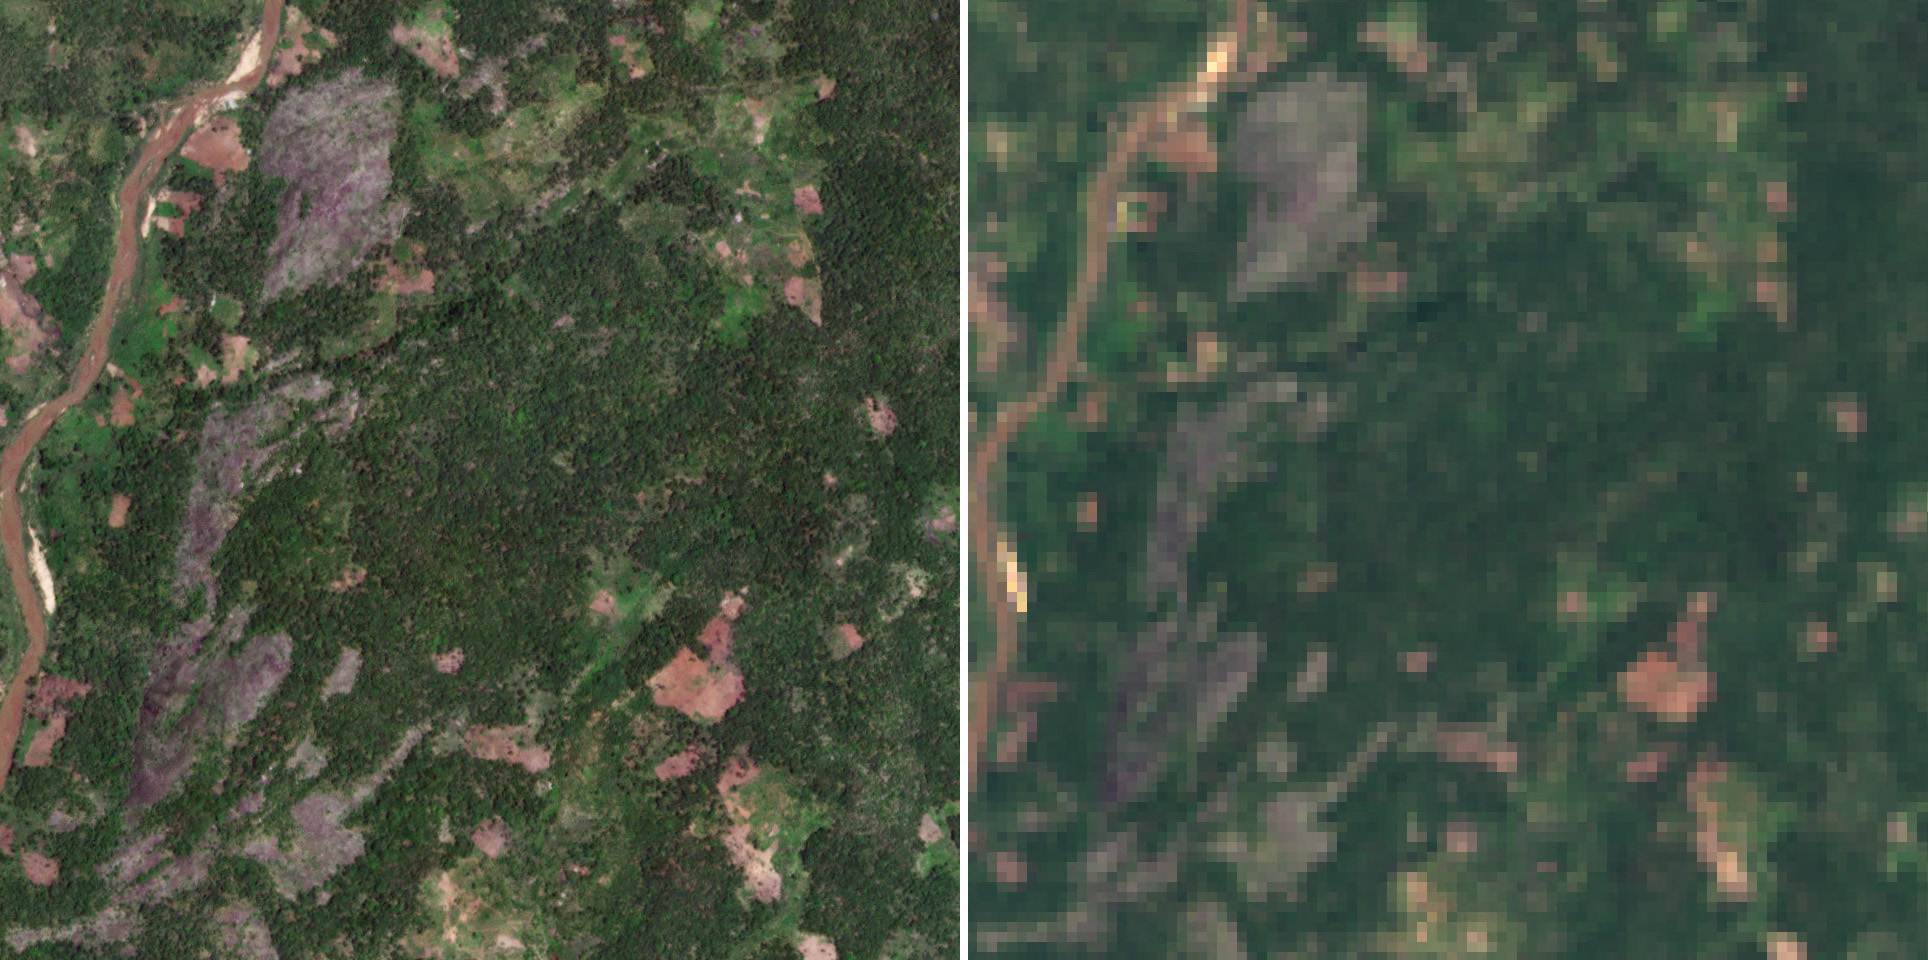 High-resolution satellite imagery helps improve the accuracy and consistency of forest area estimation by providing a clearer picture of land cover and land use over a given area. The images above compare an area of varied land use along the Malela River in Mozambique viewed by PlanetScope (left) and Landsat 8 (right). Both images were collected on December 4, 2020. © 2020, Planet Labs Inc. All Rights Reserved.